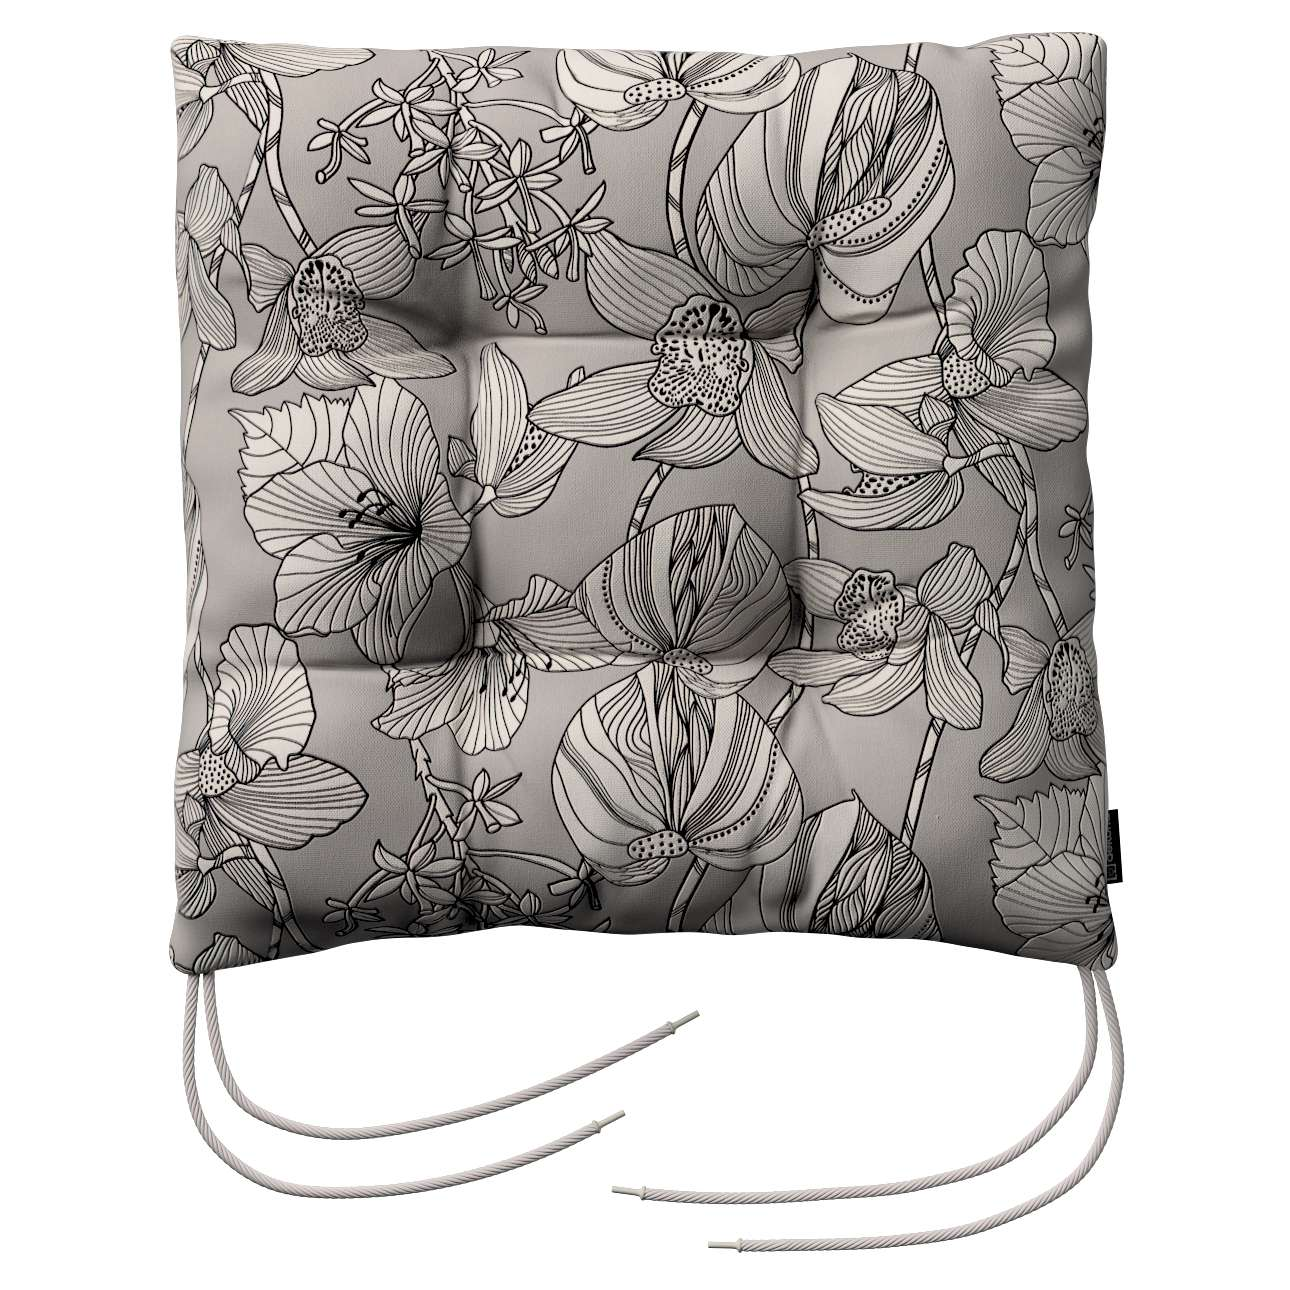 Jacek seat pad with ties 40 x 40 x 8 cm (16 x 16 x 3 inch) in collection Brooklyn, fabric: 137-80